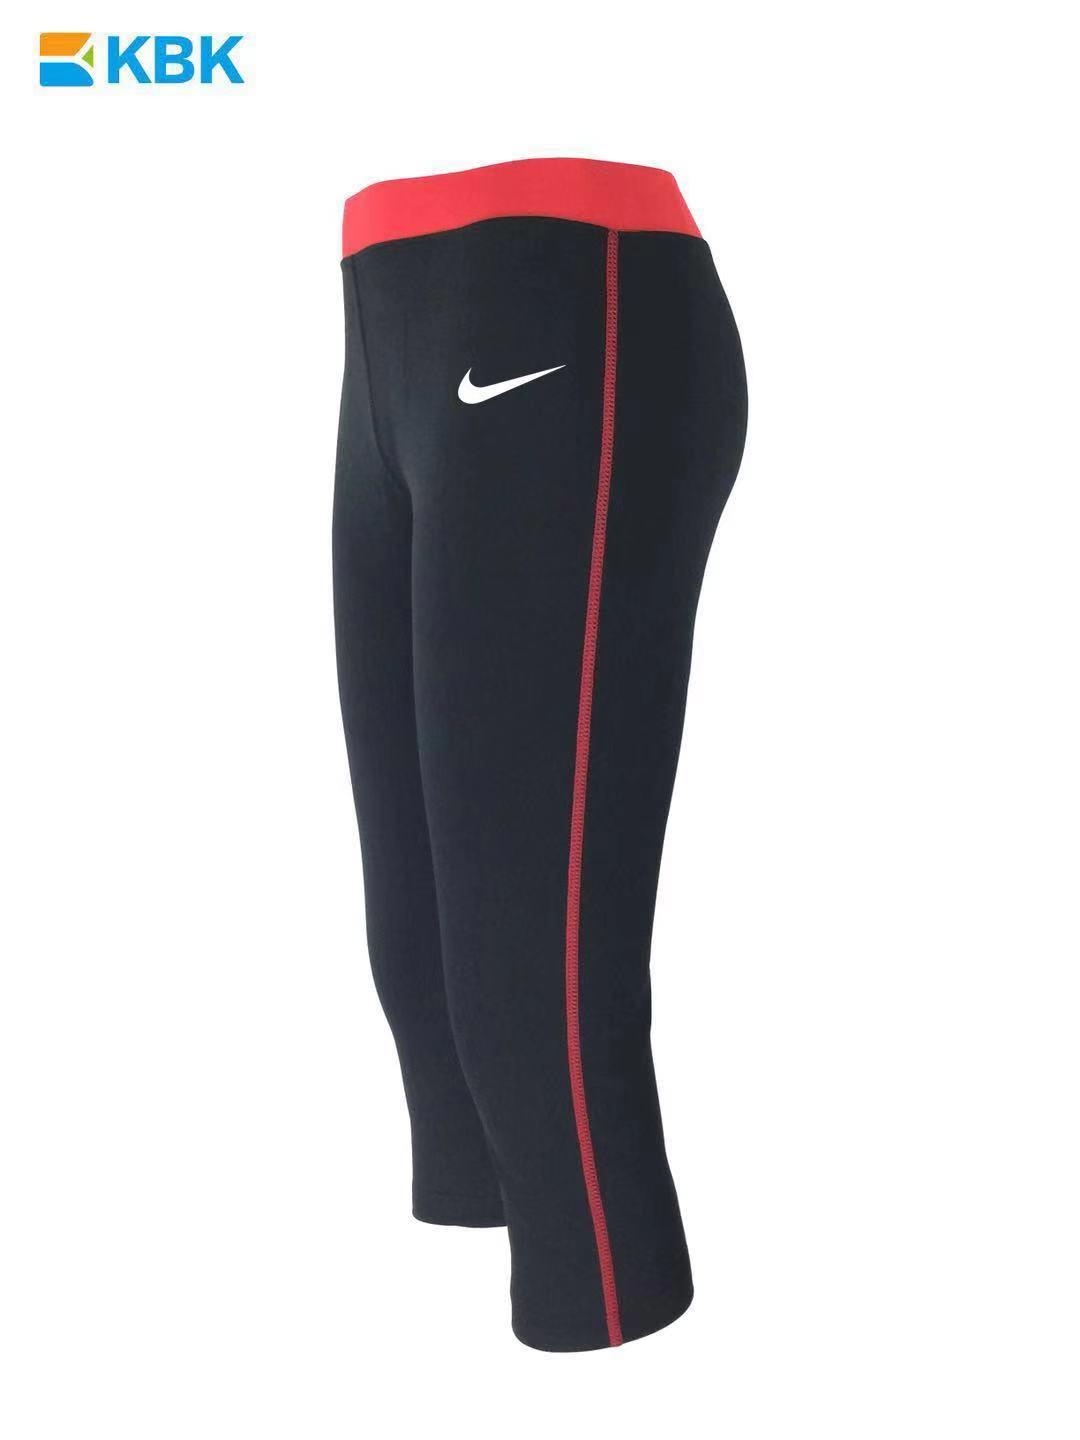 256beab167fd1 Womens Sports Pants for sale - Sports Pants for Women online brands ...